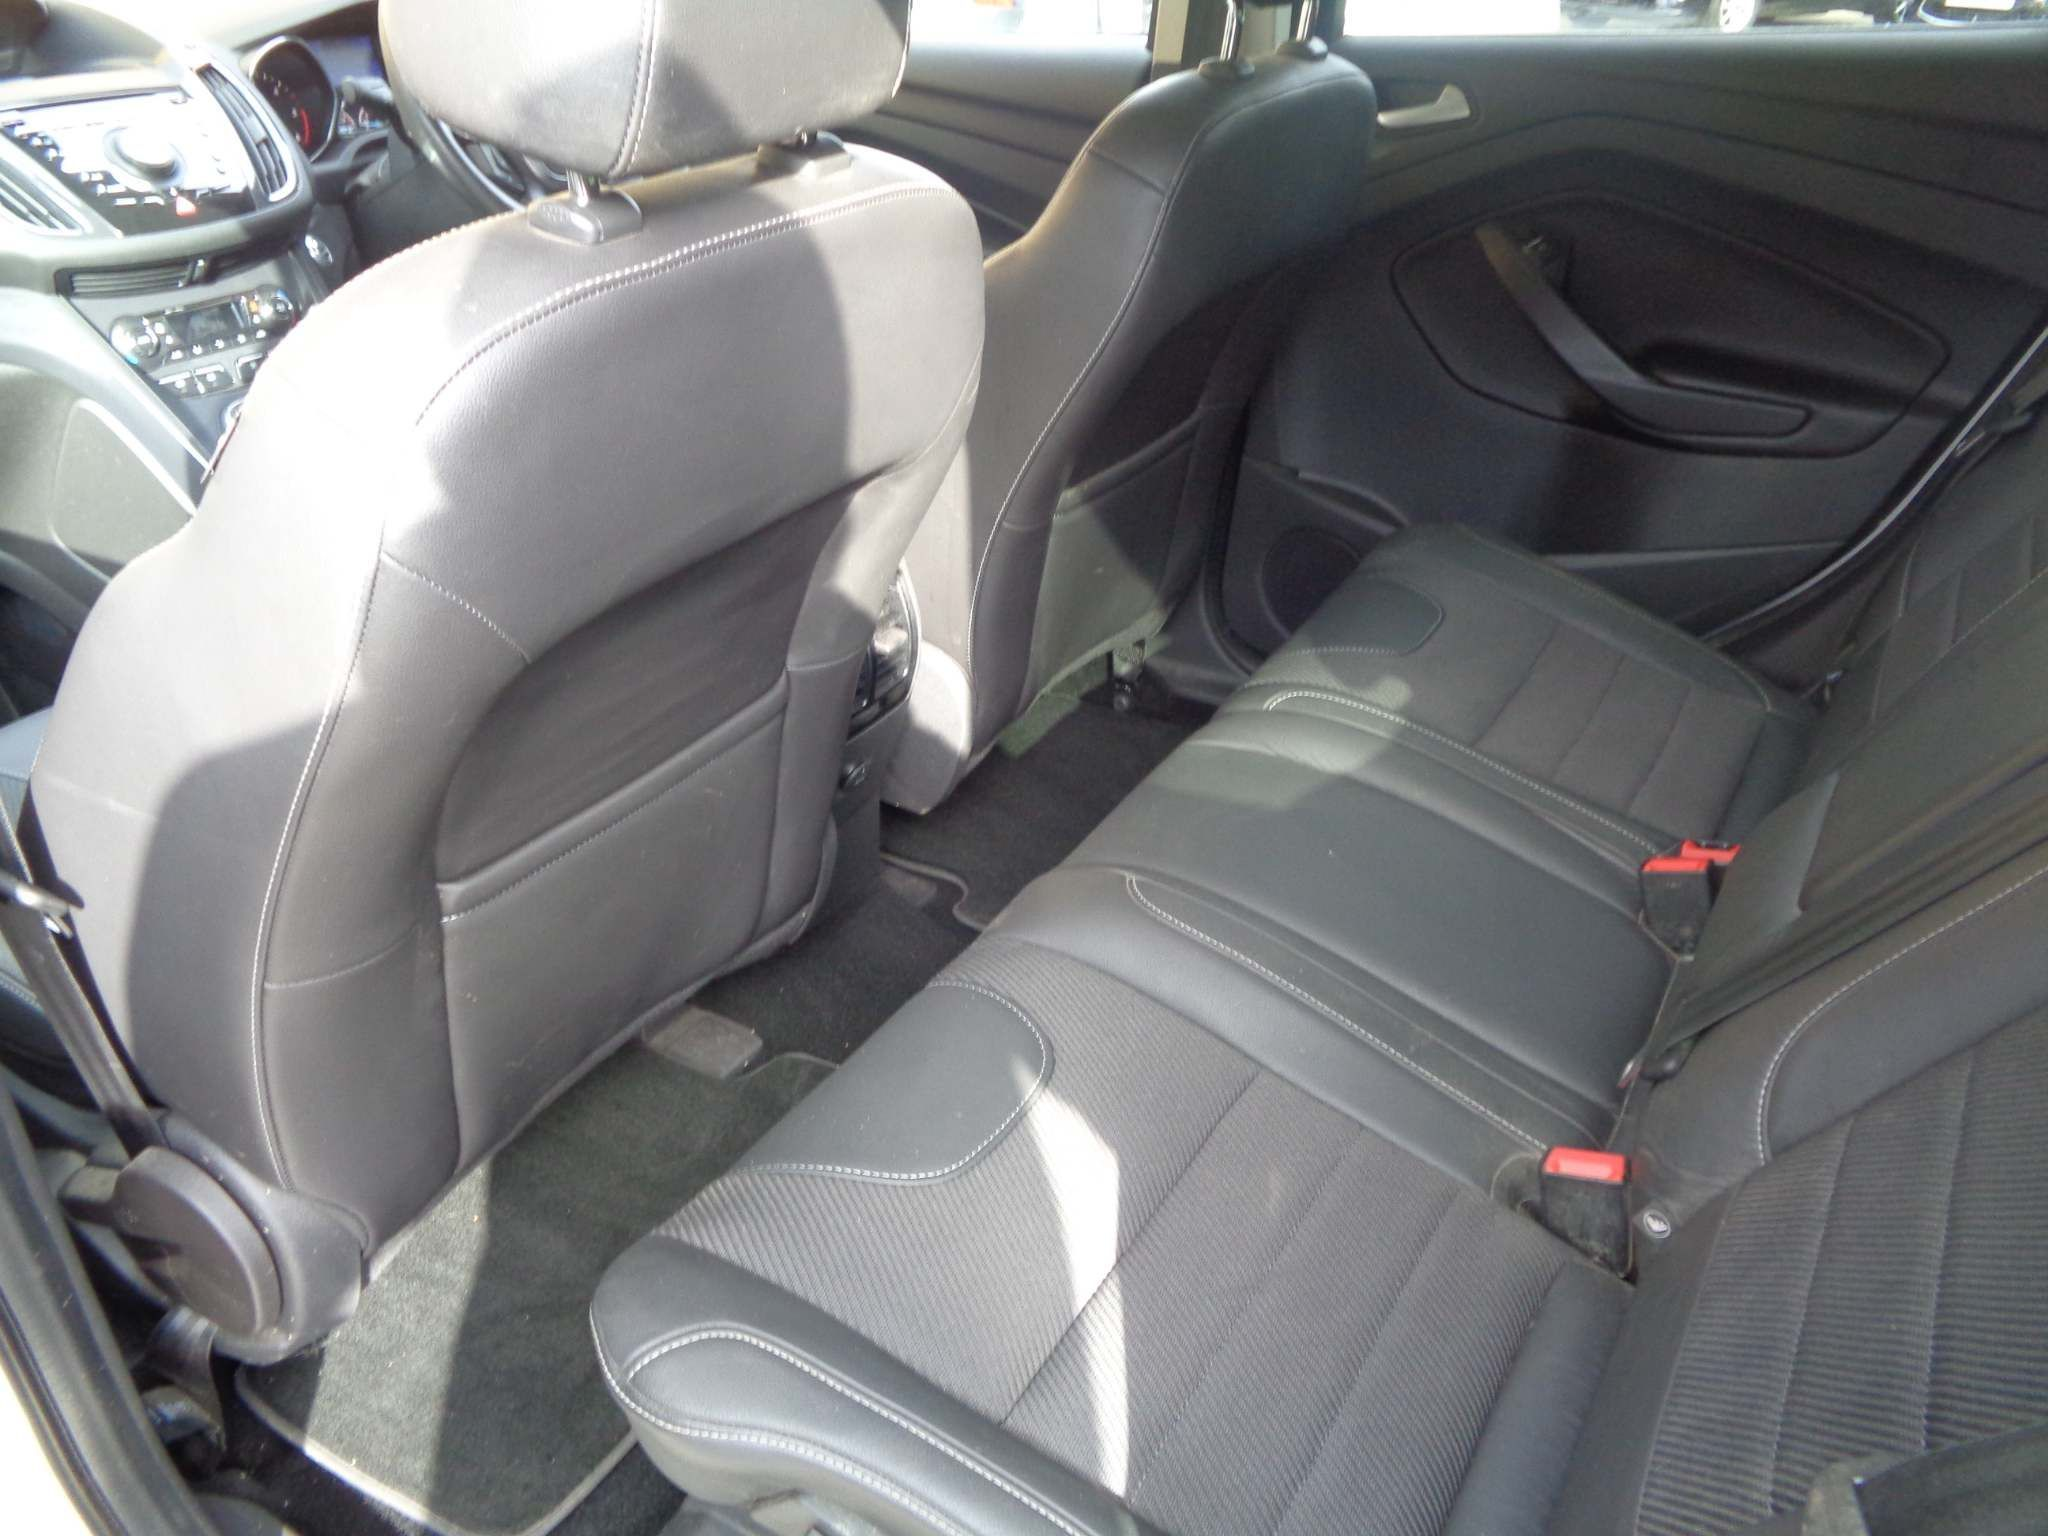 http://pictures2.autotrader.co.uk/imgser-uk/servlet/media?id=acce666fe5434af99598ae60edf2cbc7